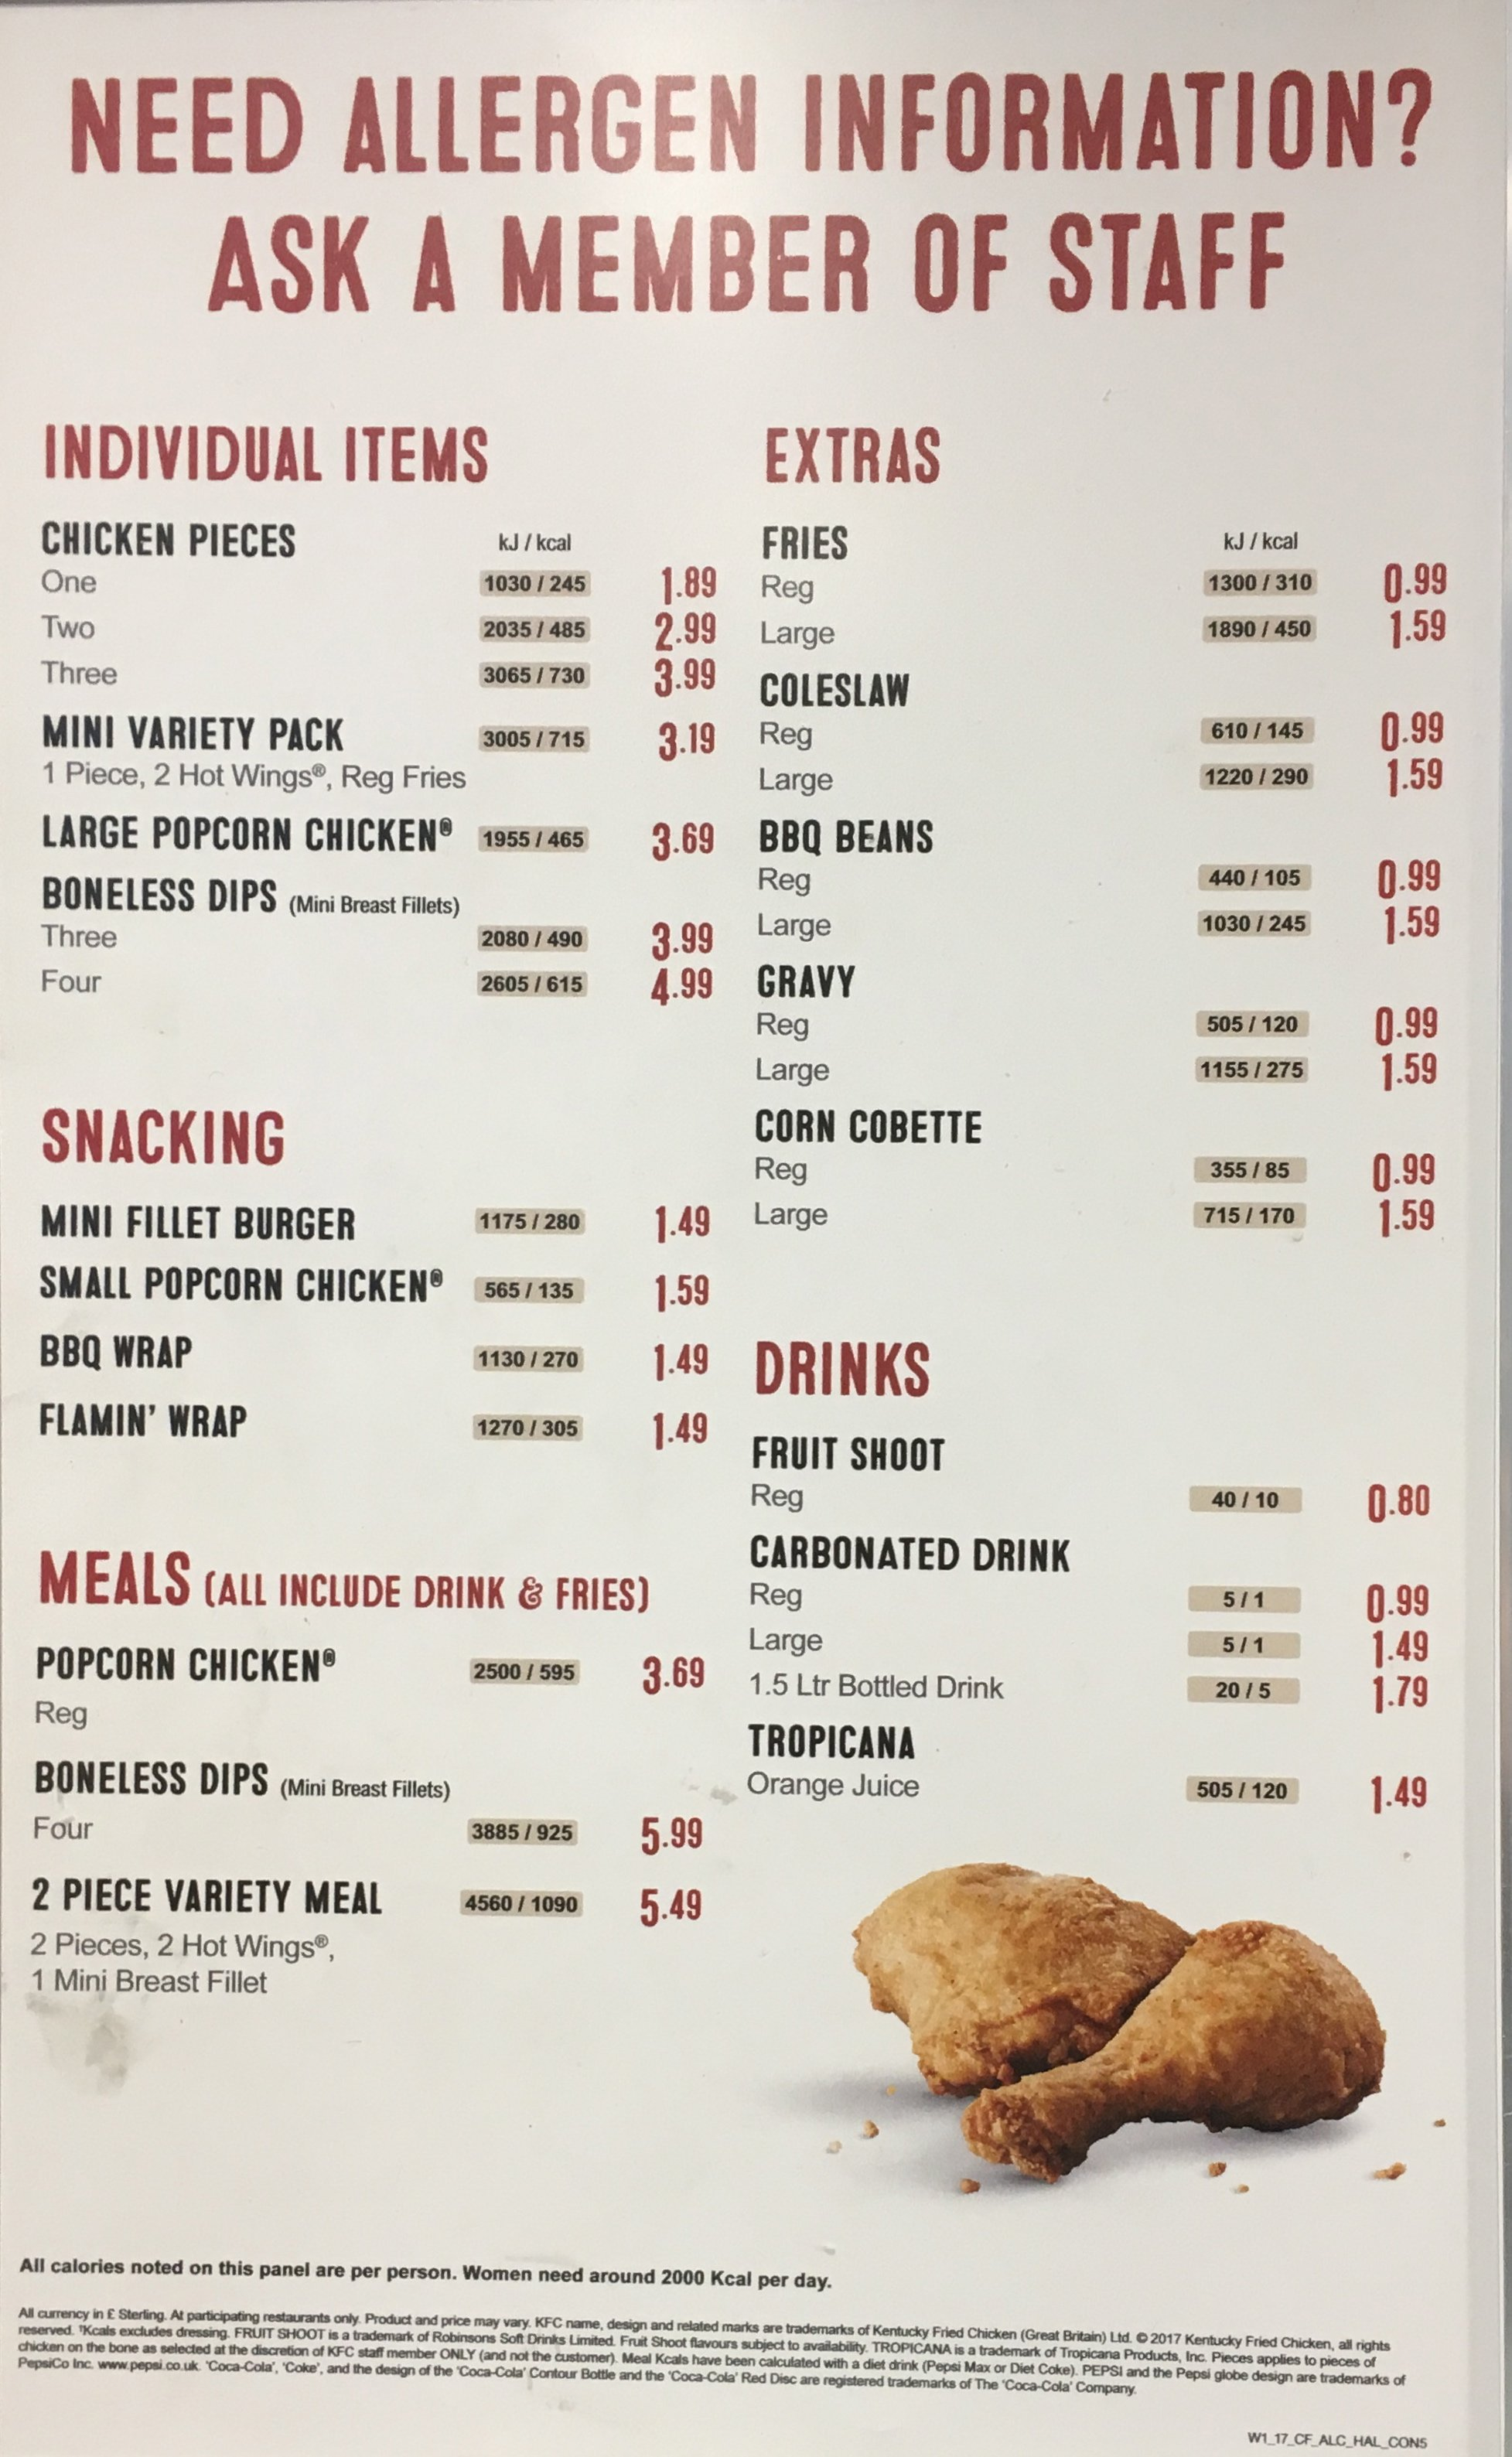 Kfc food calories chart yarta. Innovations2019. Org.